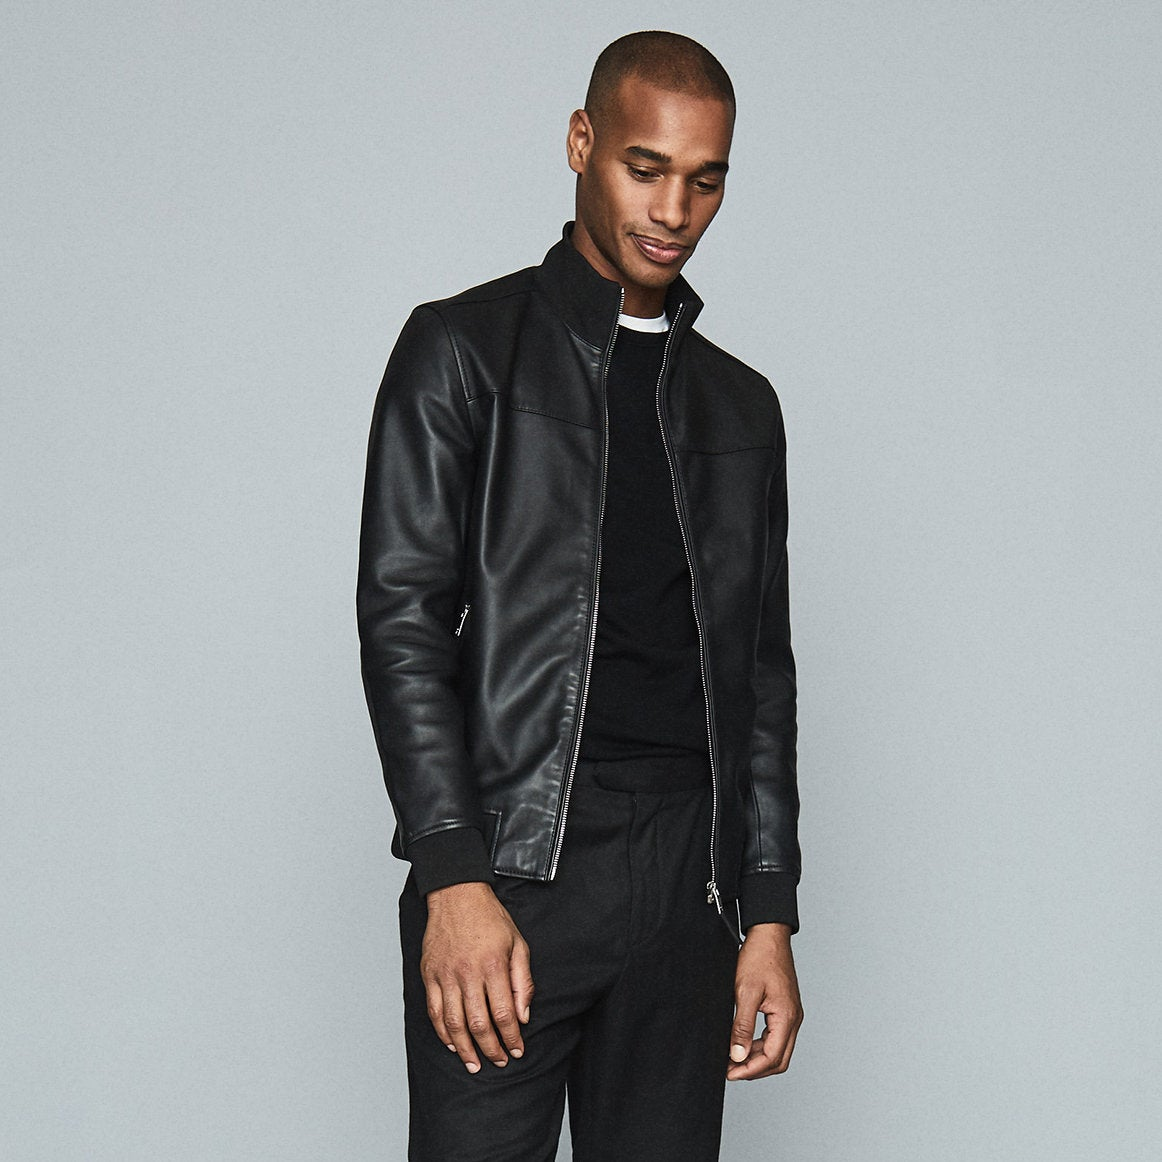 reiss jacket